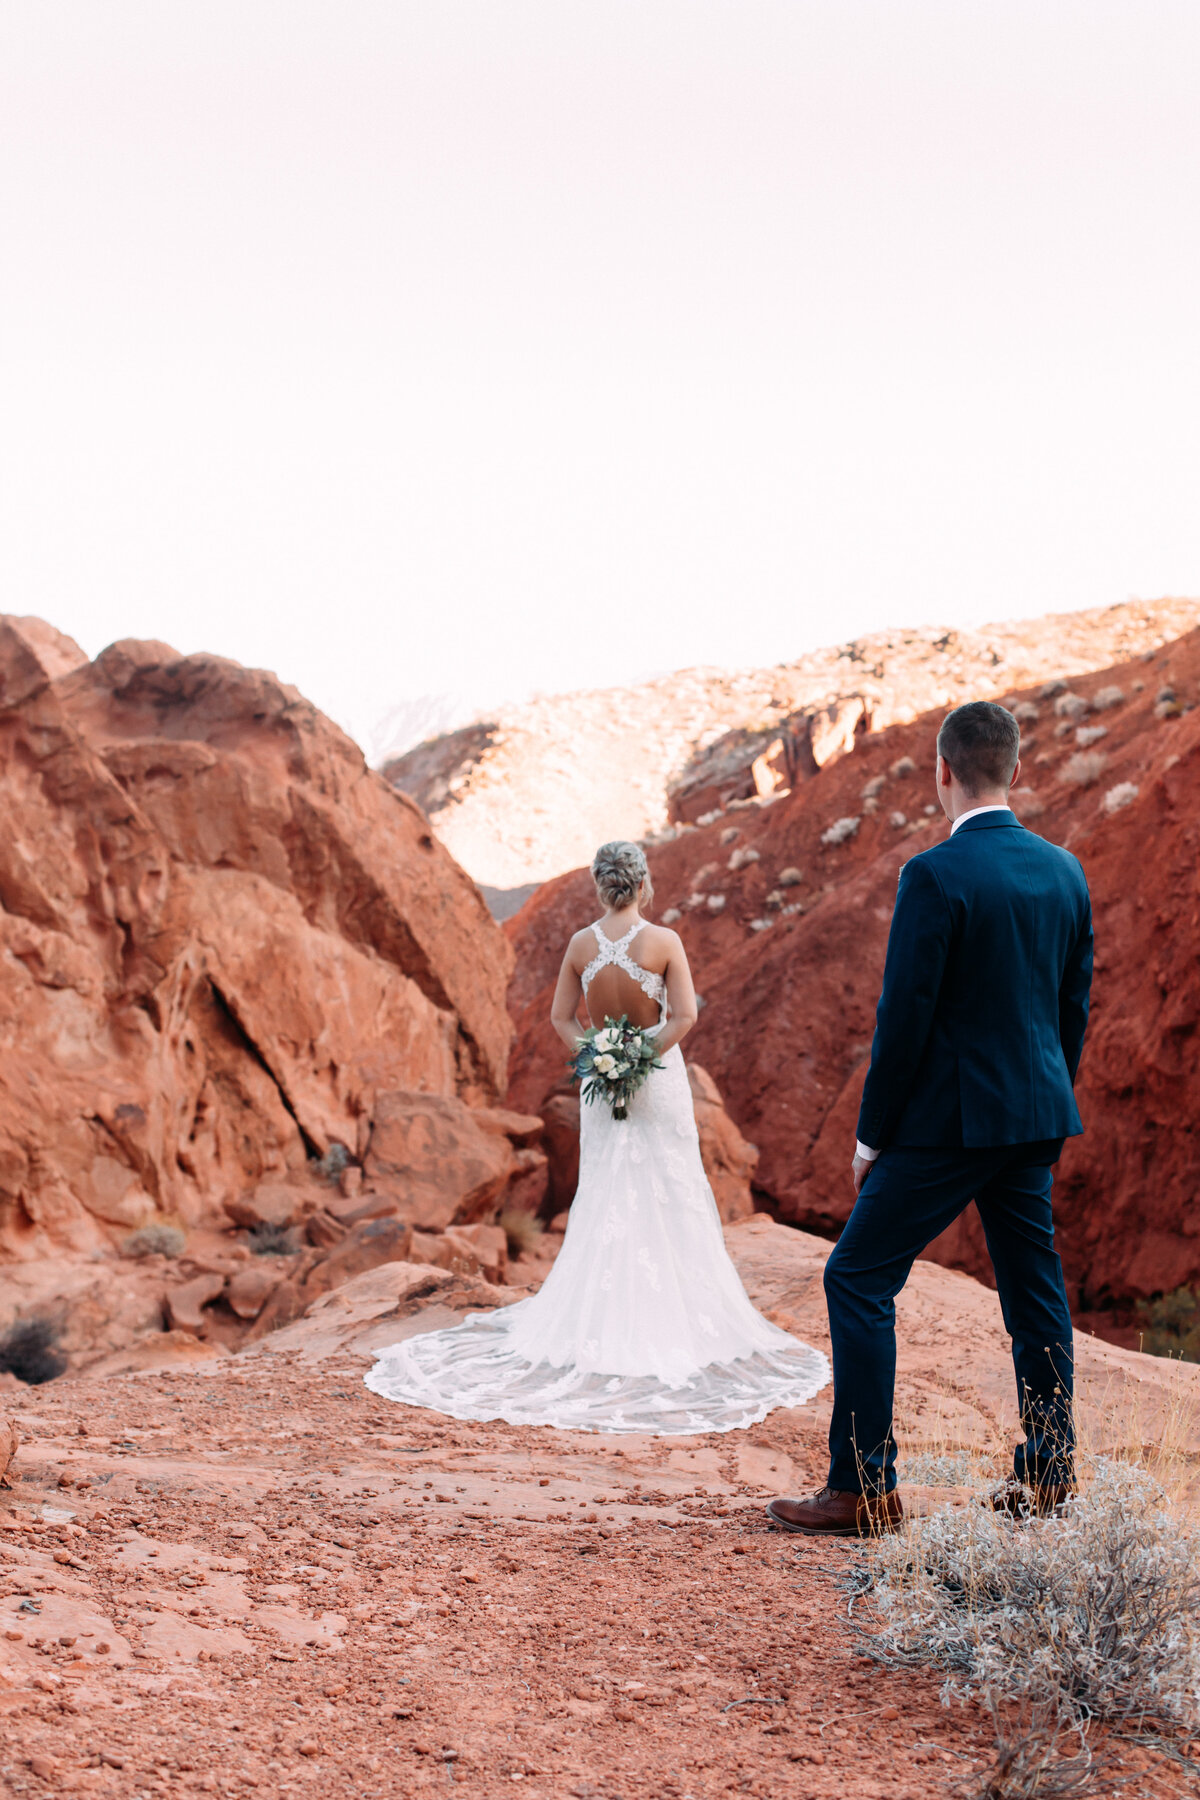 Heather+Ivan|AshlynSavannahPhoto|ValleyofFireElopement-28